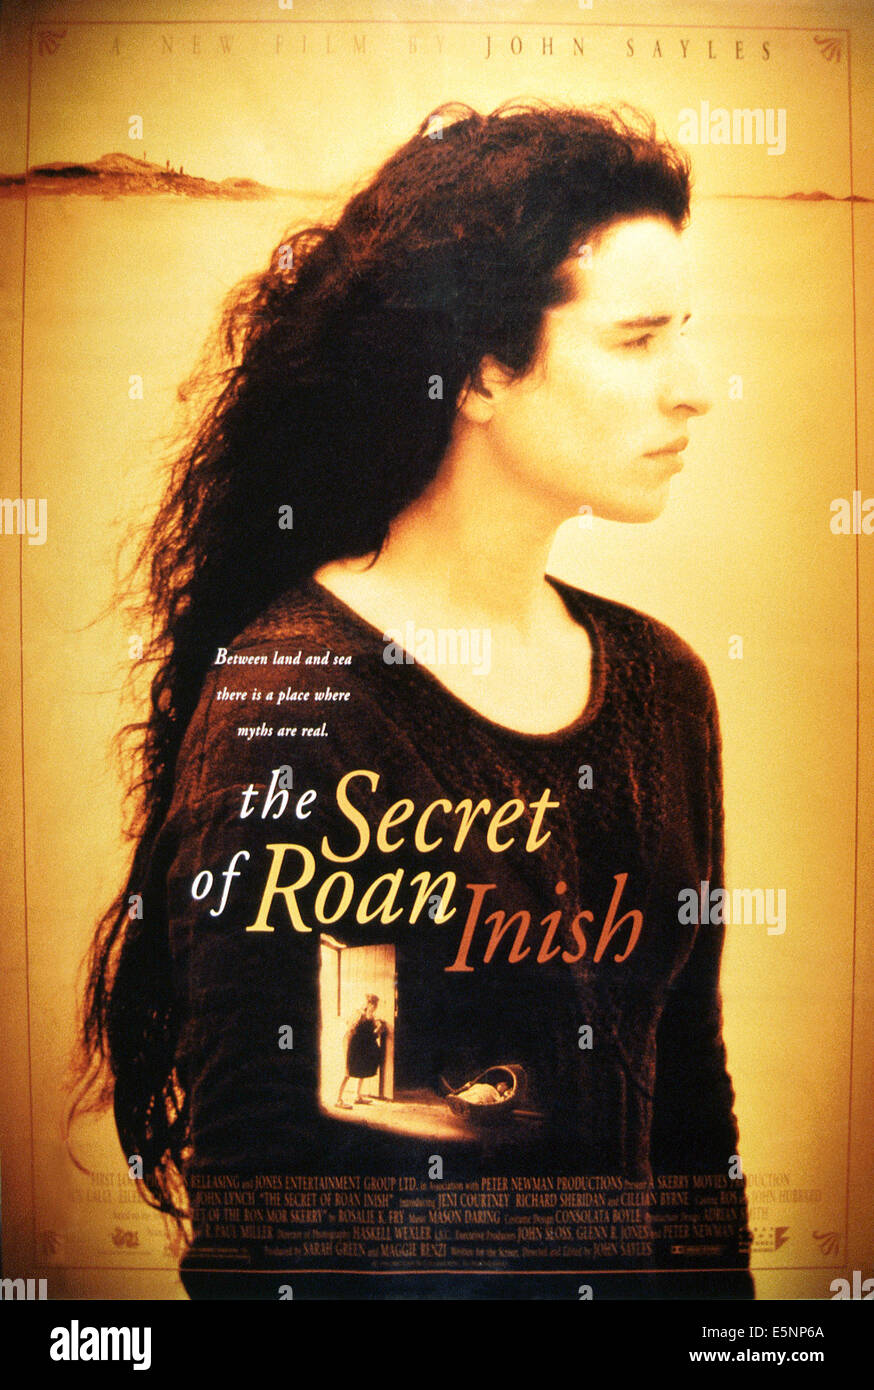 THE SECRET OF ROAN INISH, US poster, Susan Lynch, 1994, © Samuel Goldwyn/courtesy Everett Collection - Stock Image